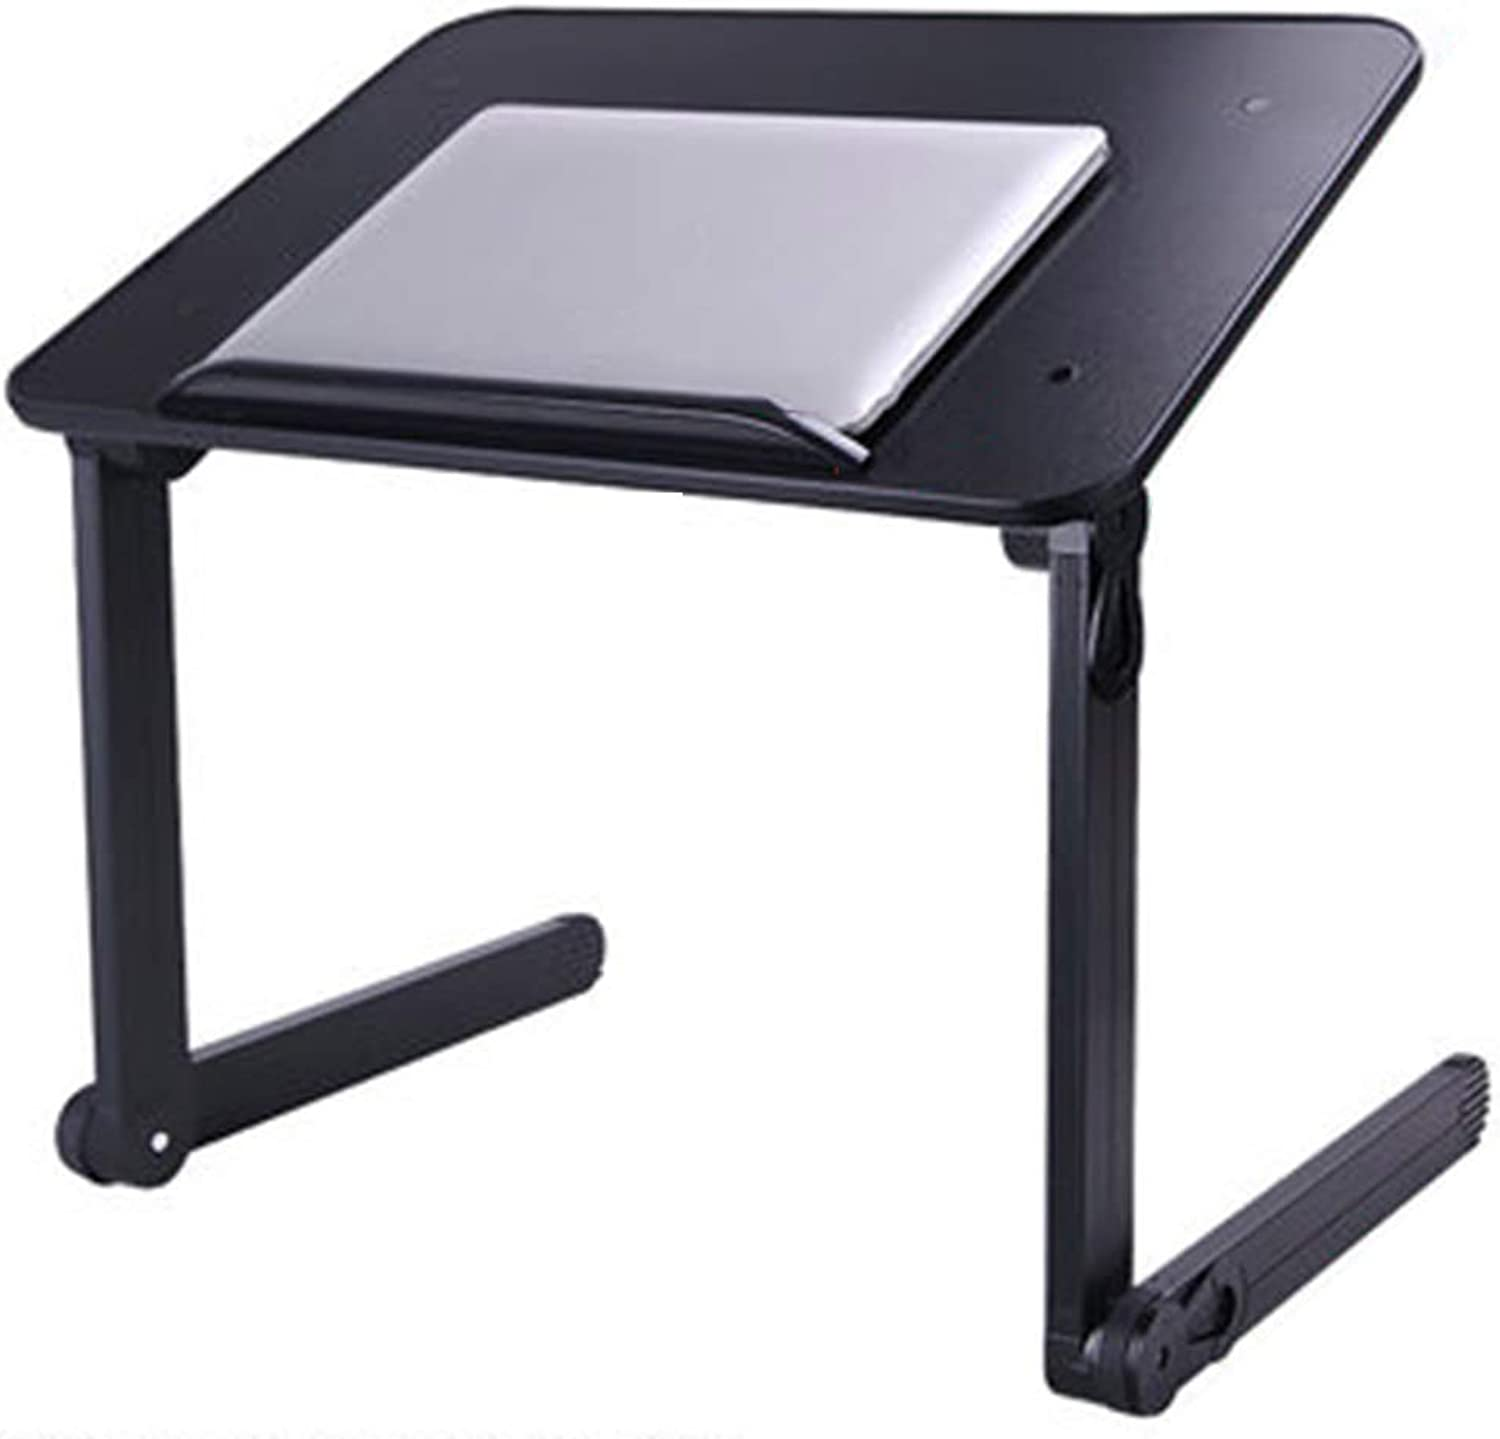 Coffee Table Folding Table Laptop Stand Adjustable Height Angle Lifting Small Desk Multifunction Lazy Bedside Table, Aluminum Alloy, 2 colors (color   A)